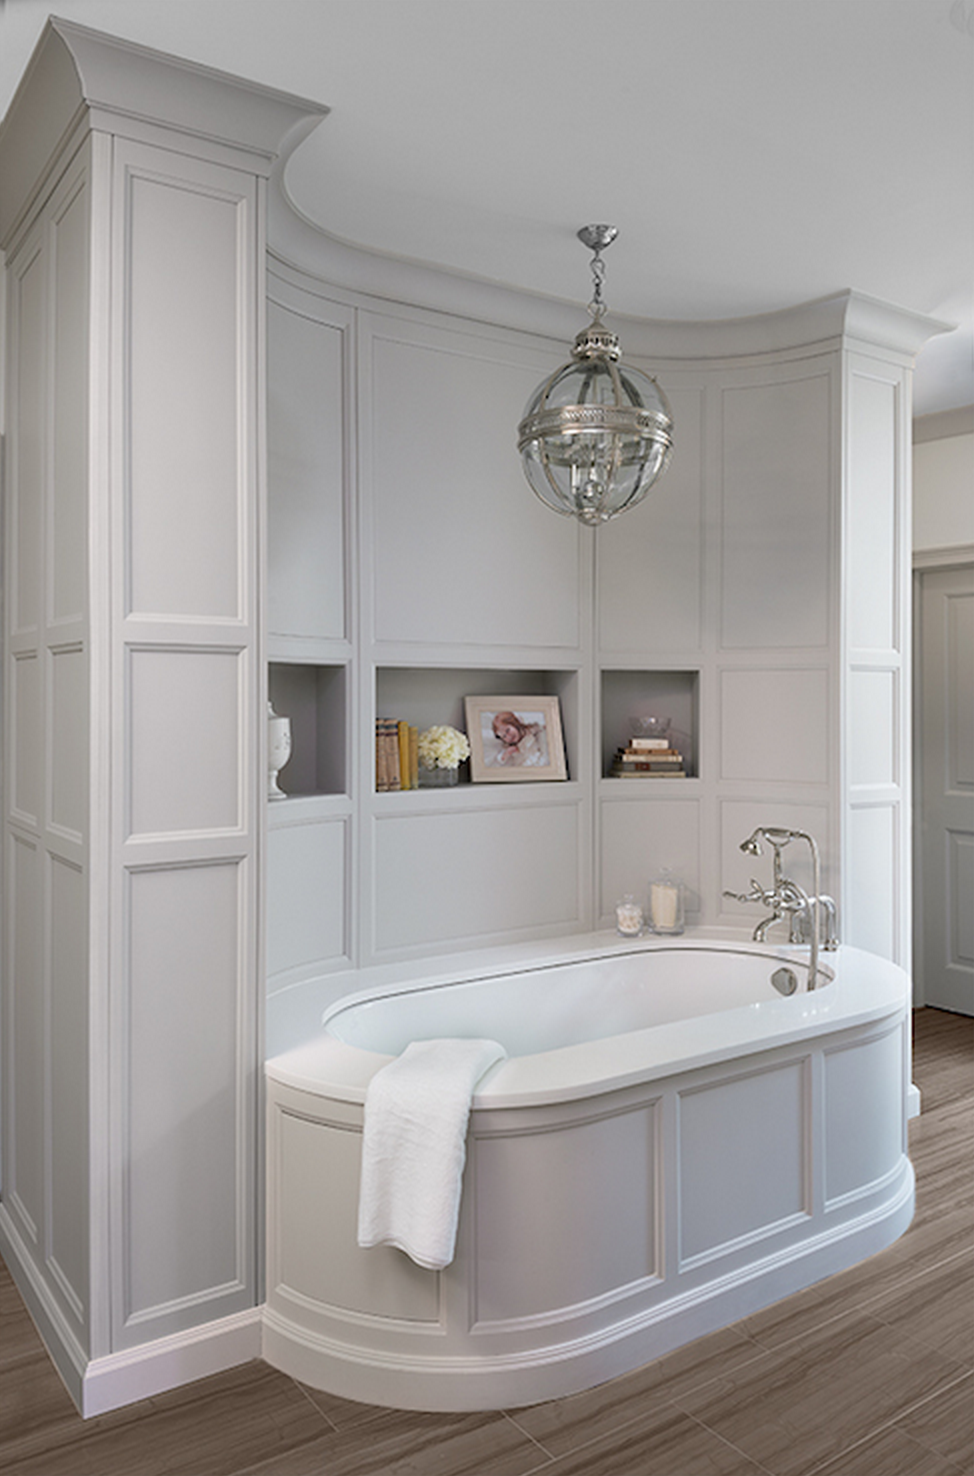 Incredible Master Bathroom With Oval Gray Paneled Bathtub Filling Built In  Gray Paneled Nook Accented With Bookshelf Illuminated By Restoration  Hardware ...